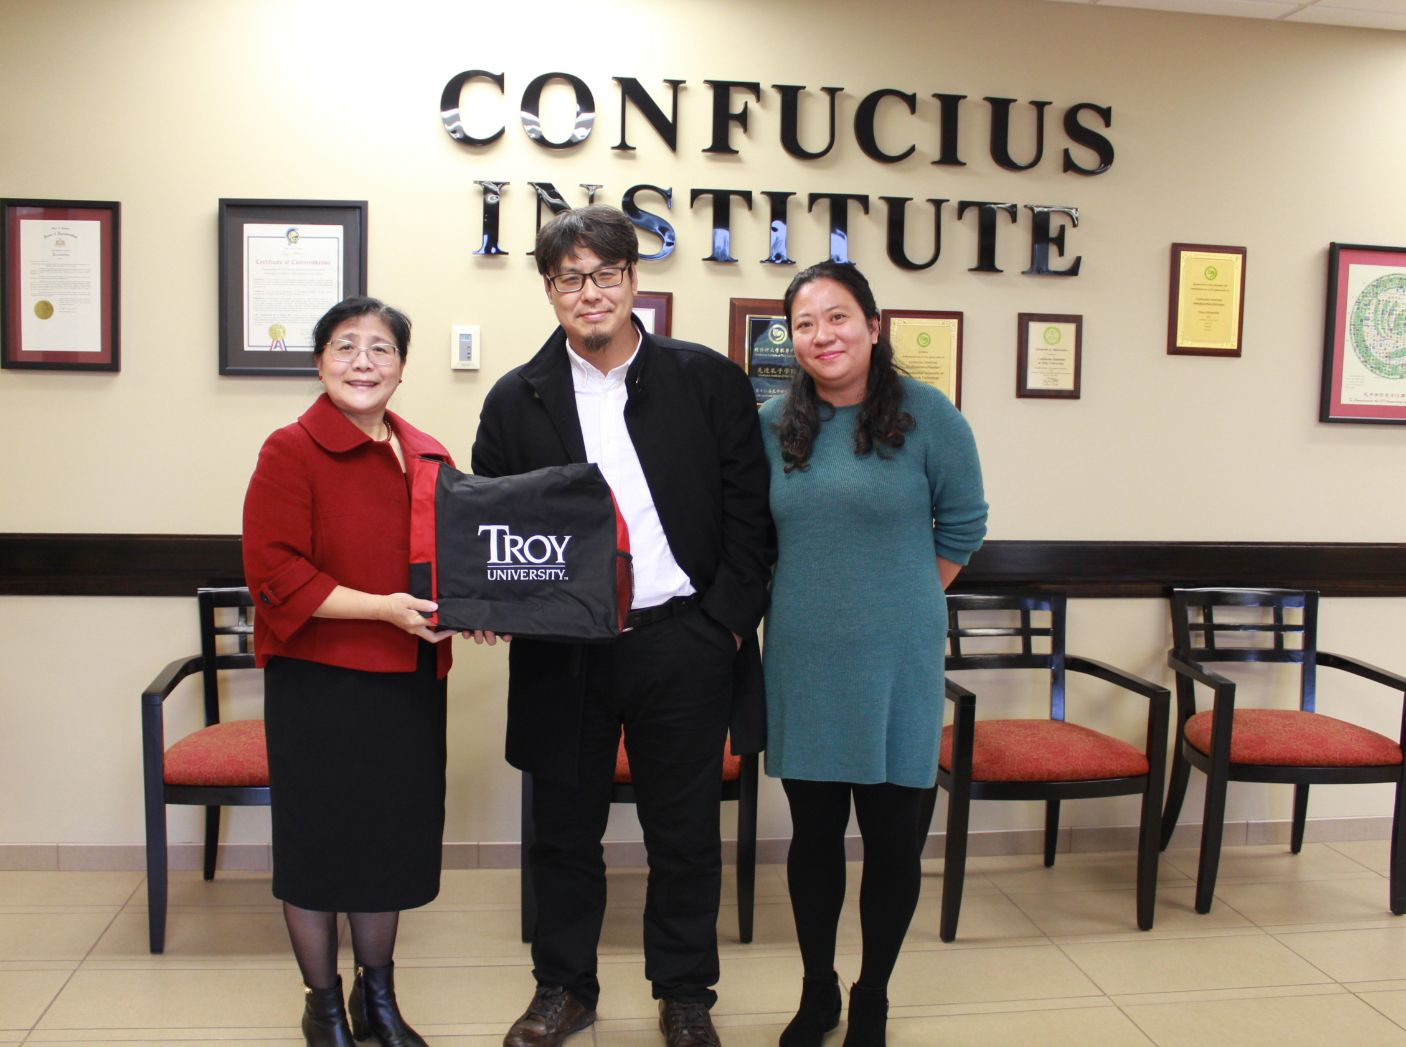 Drs. Xu and Zhang of the Confucius Institute at Troy University pose with the artist Zhou Tao.